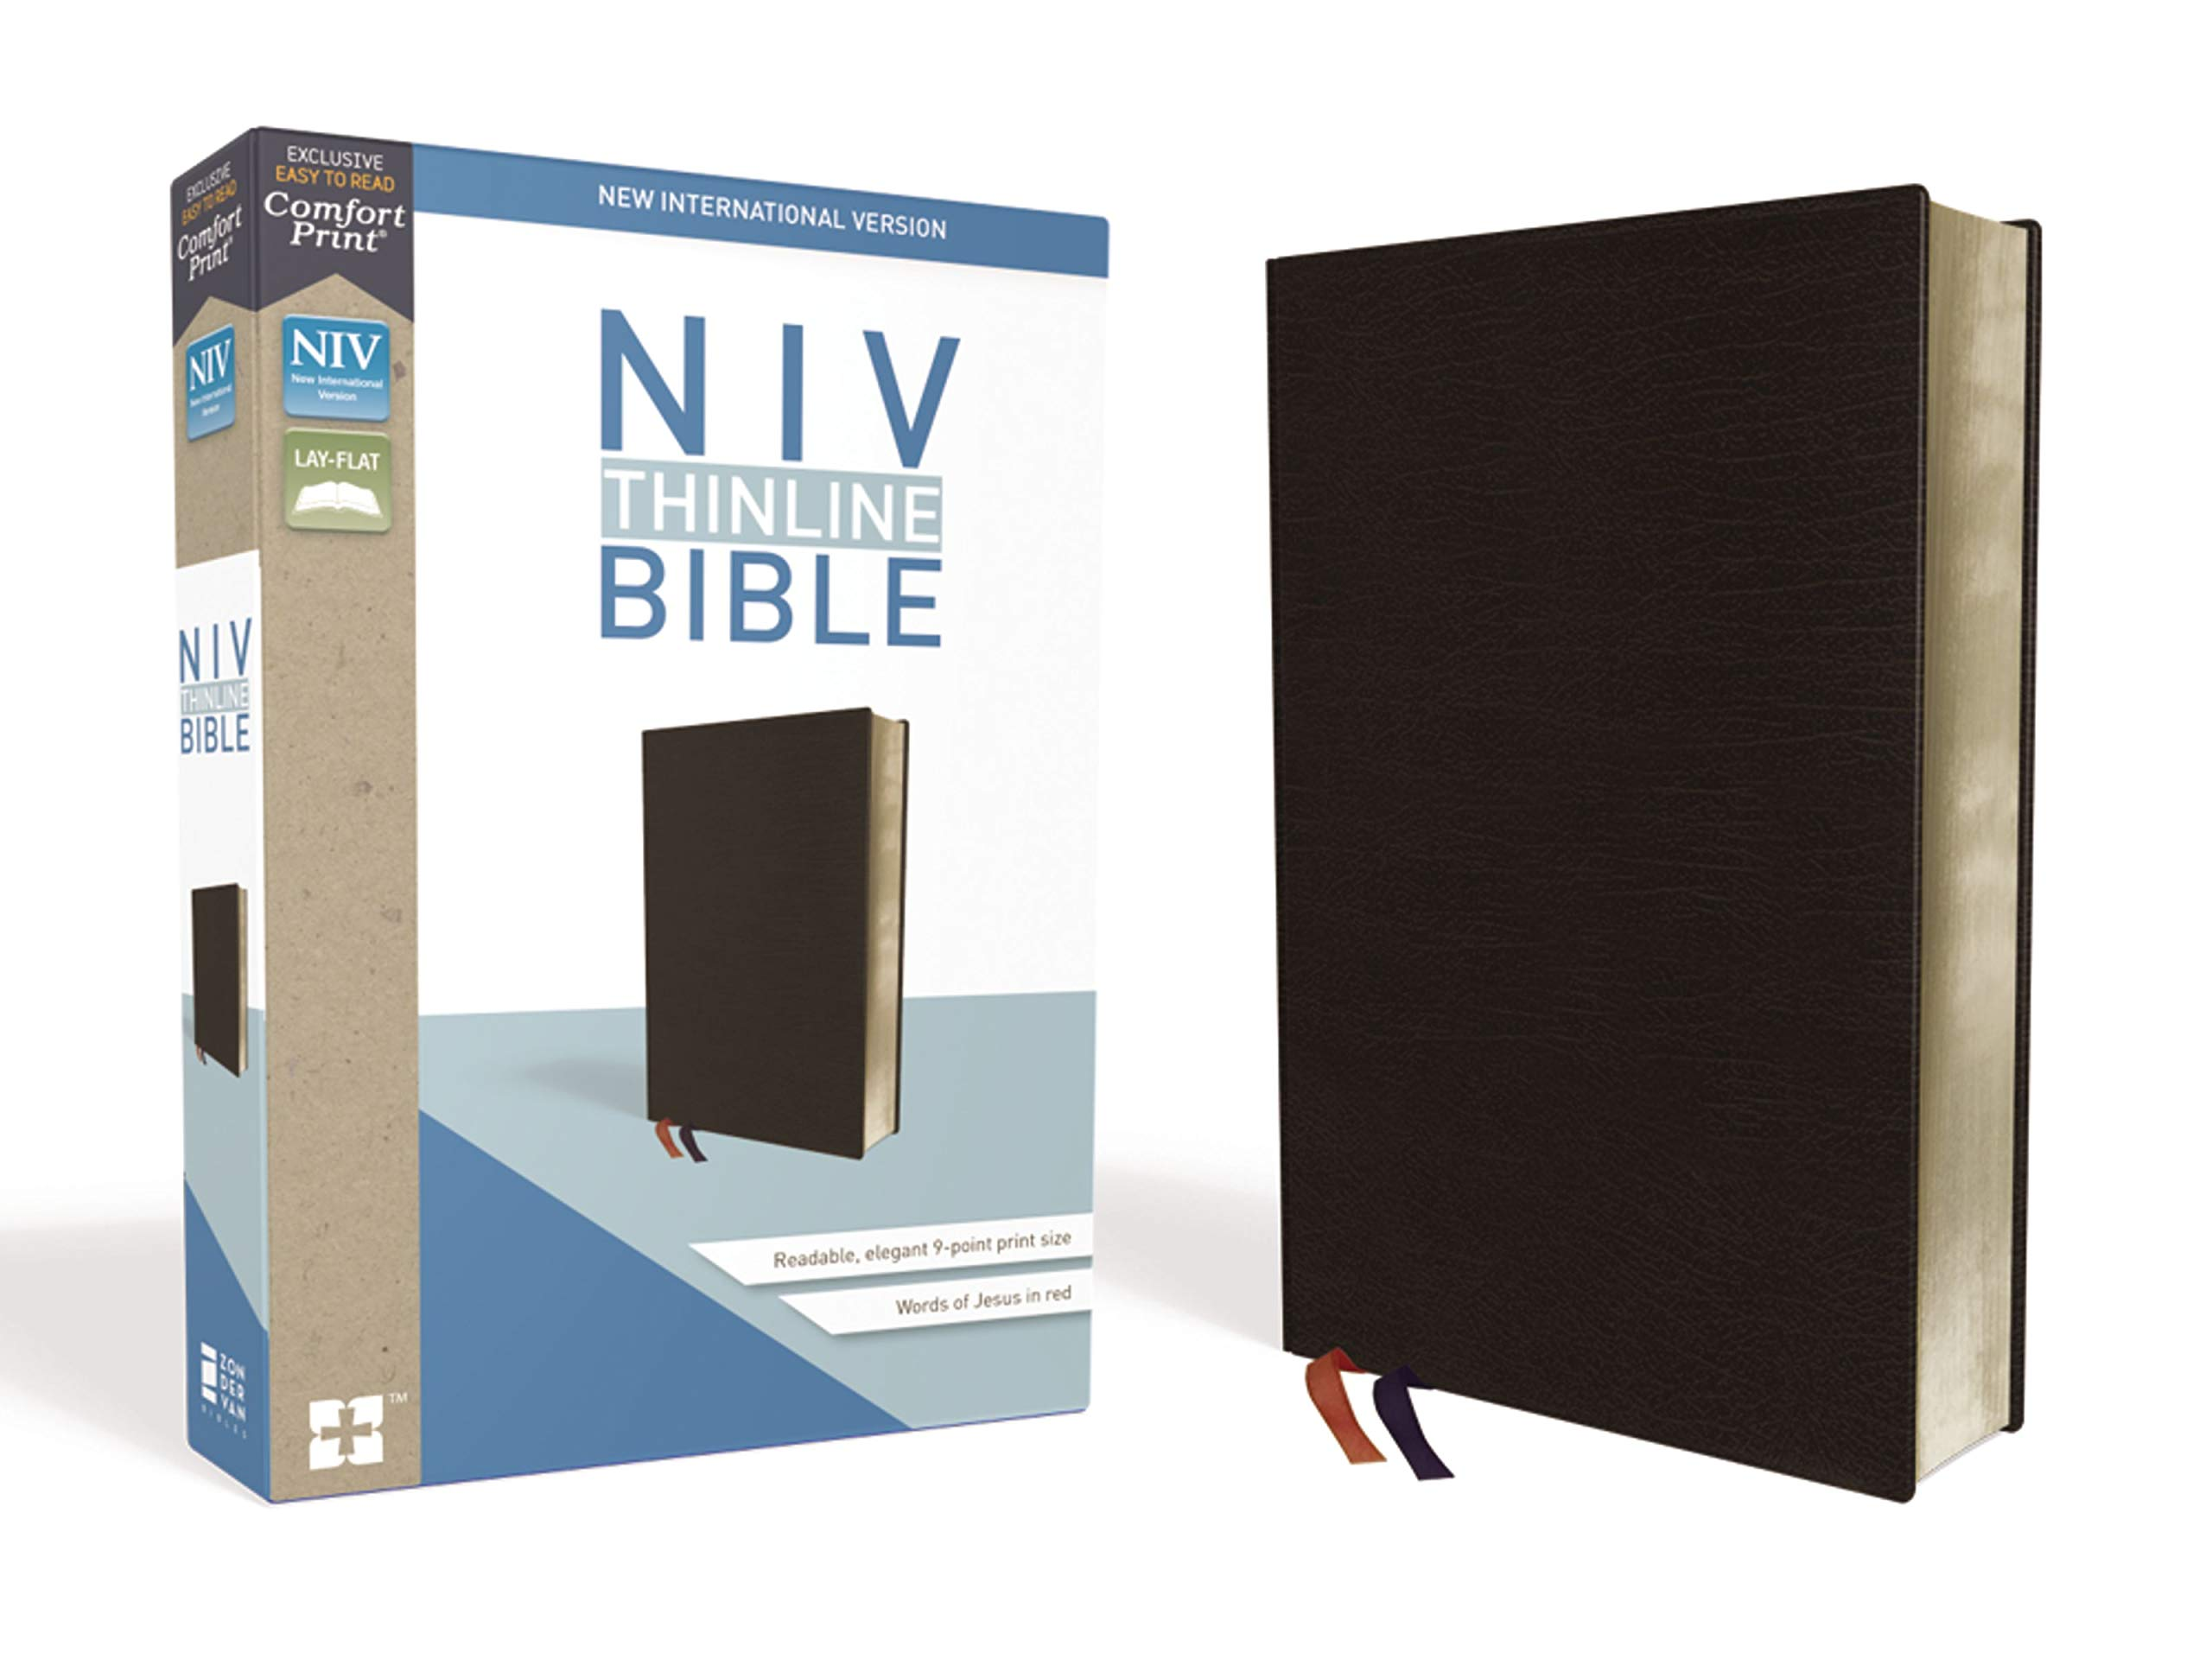 NIV, Thinline Bible, Bonded Leather, Black, Red Letter, Comfort Print